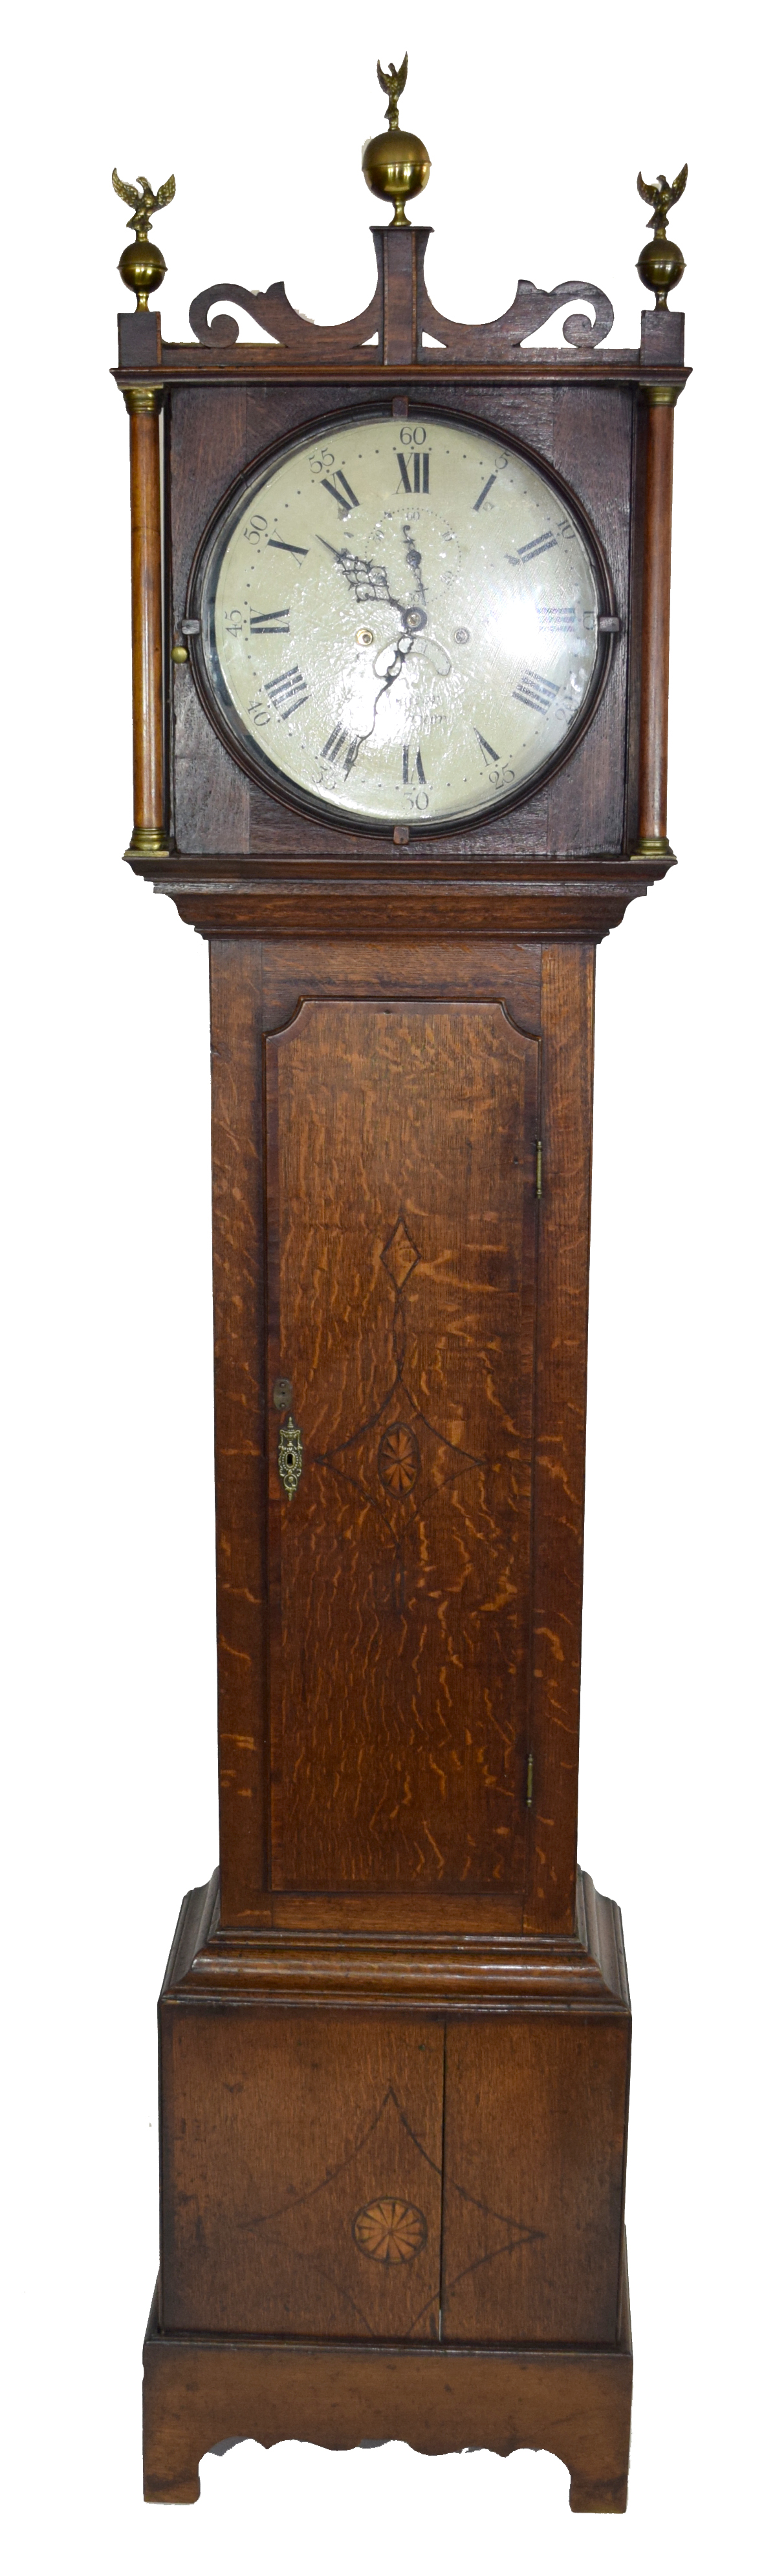 Deacon, Leicester, George III longcase clock with circular face with Roman and Arabic numerals and